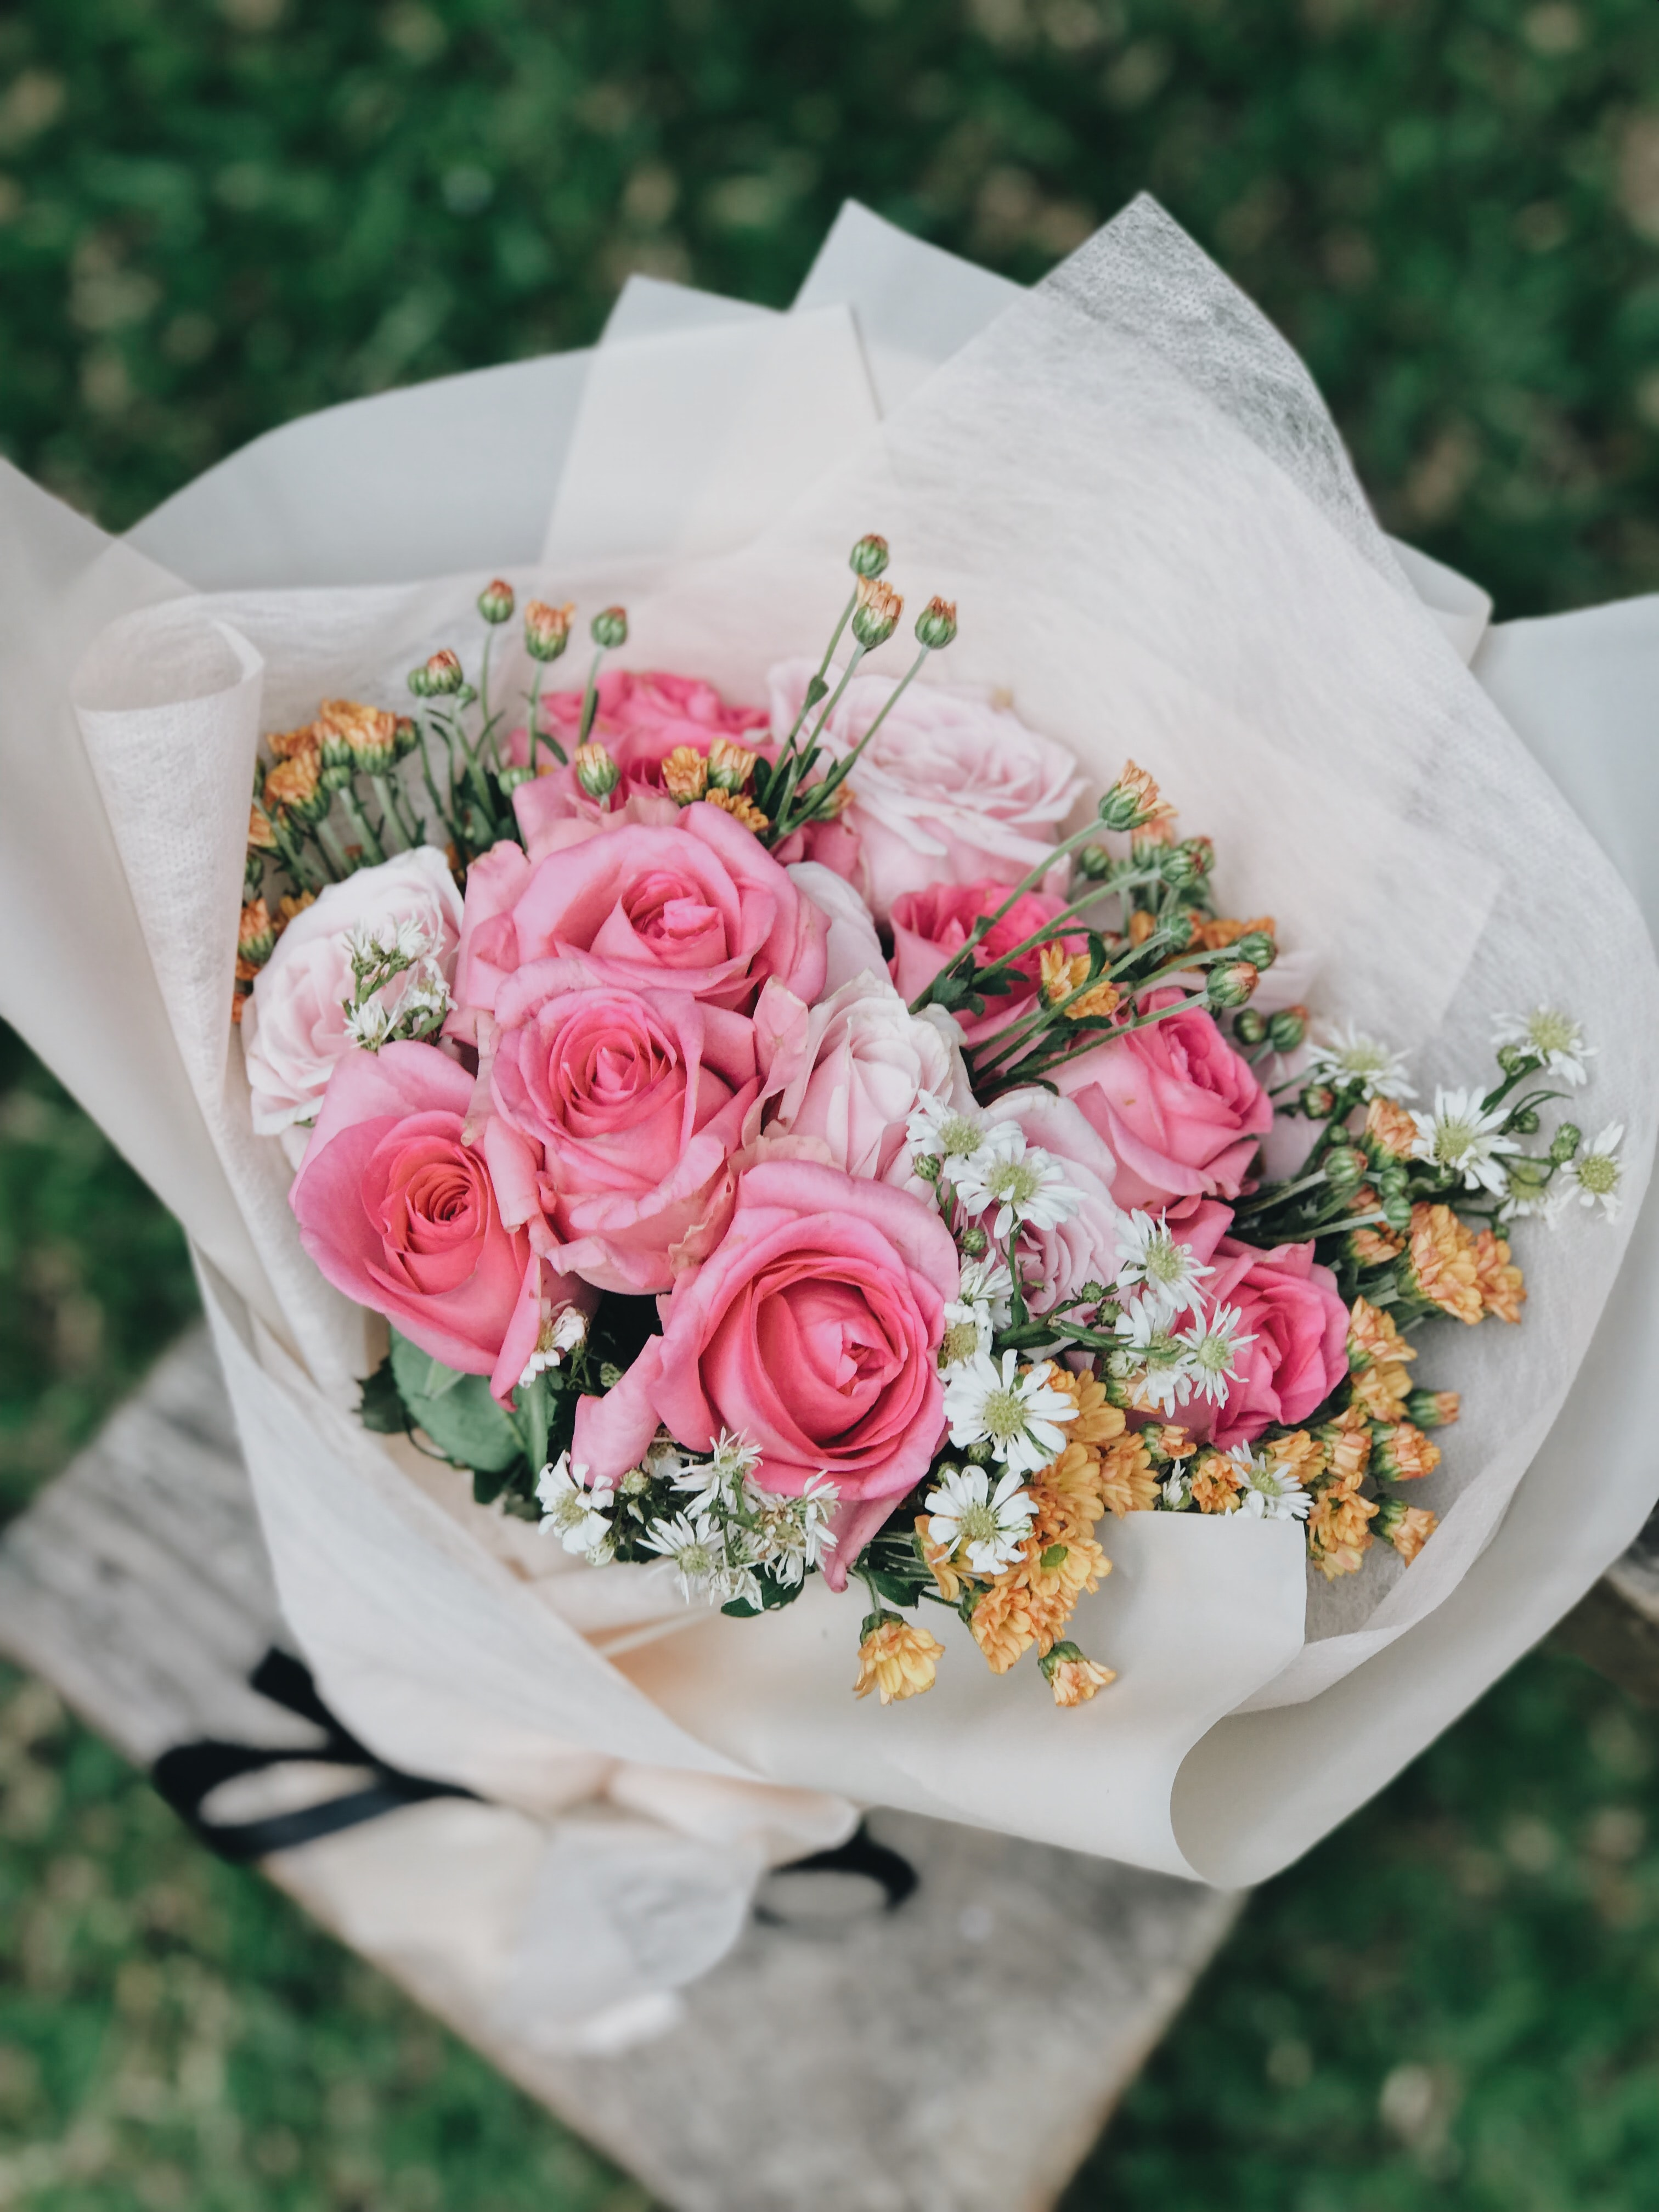 Pink And White Rose Bouquet Photo Free Flower Image On Unsplash